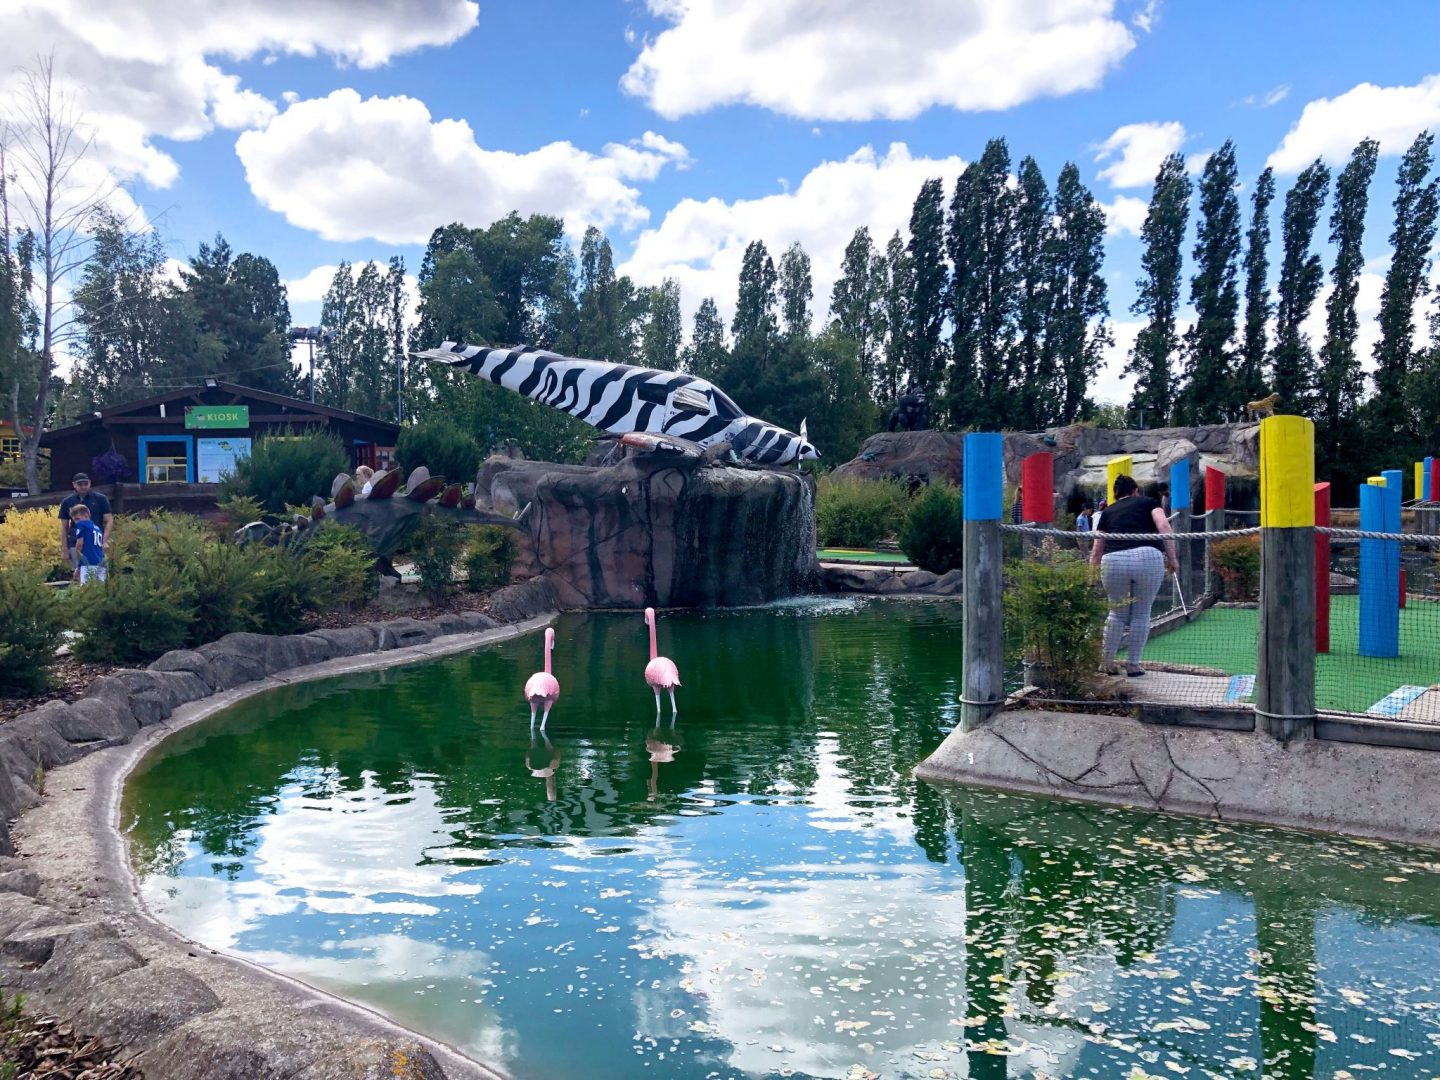 Mr Mulligan's Dino Golf Sidcup